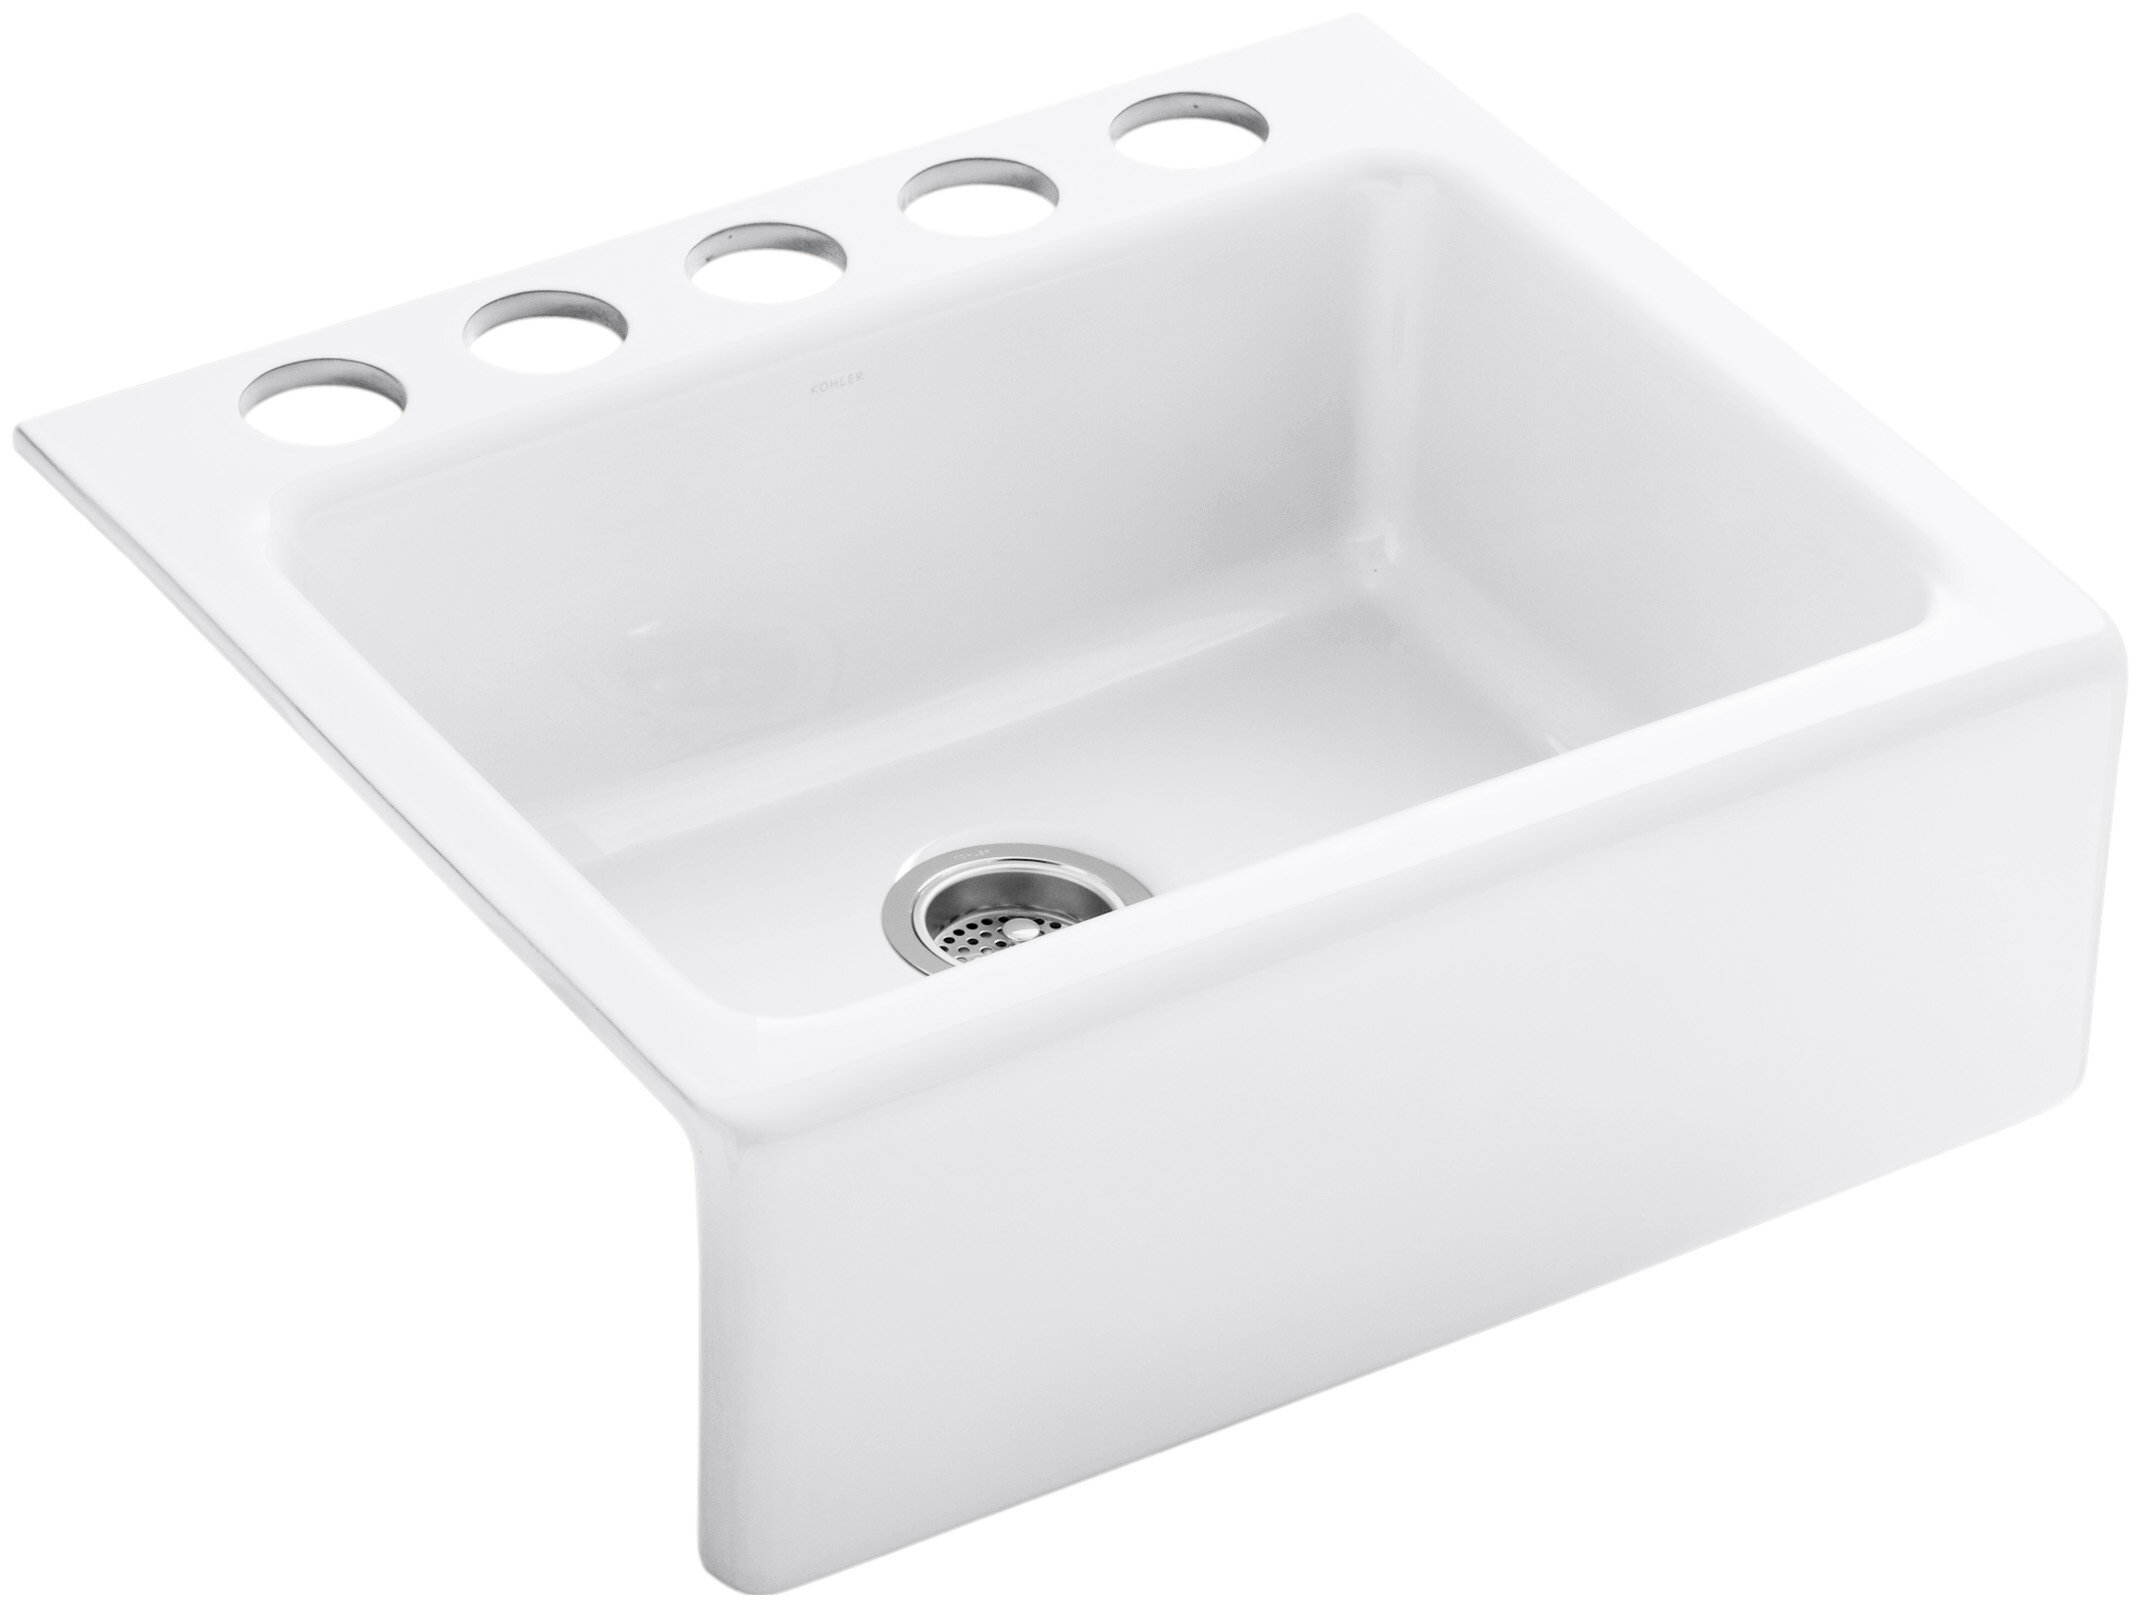 Alcott 25 L X 22 W 8 5 Under Mount Single Bowl Kitchen Sink With A Front And Oversize Faucet Holes